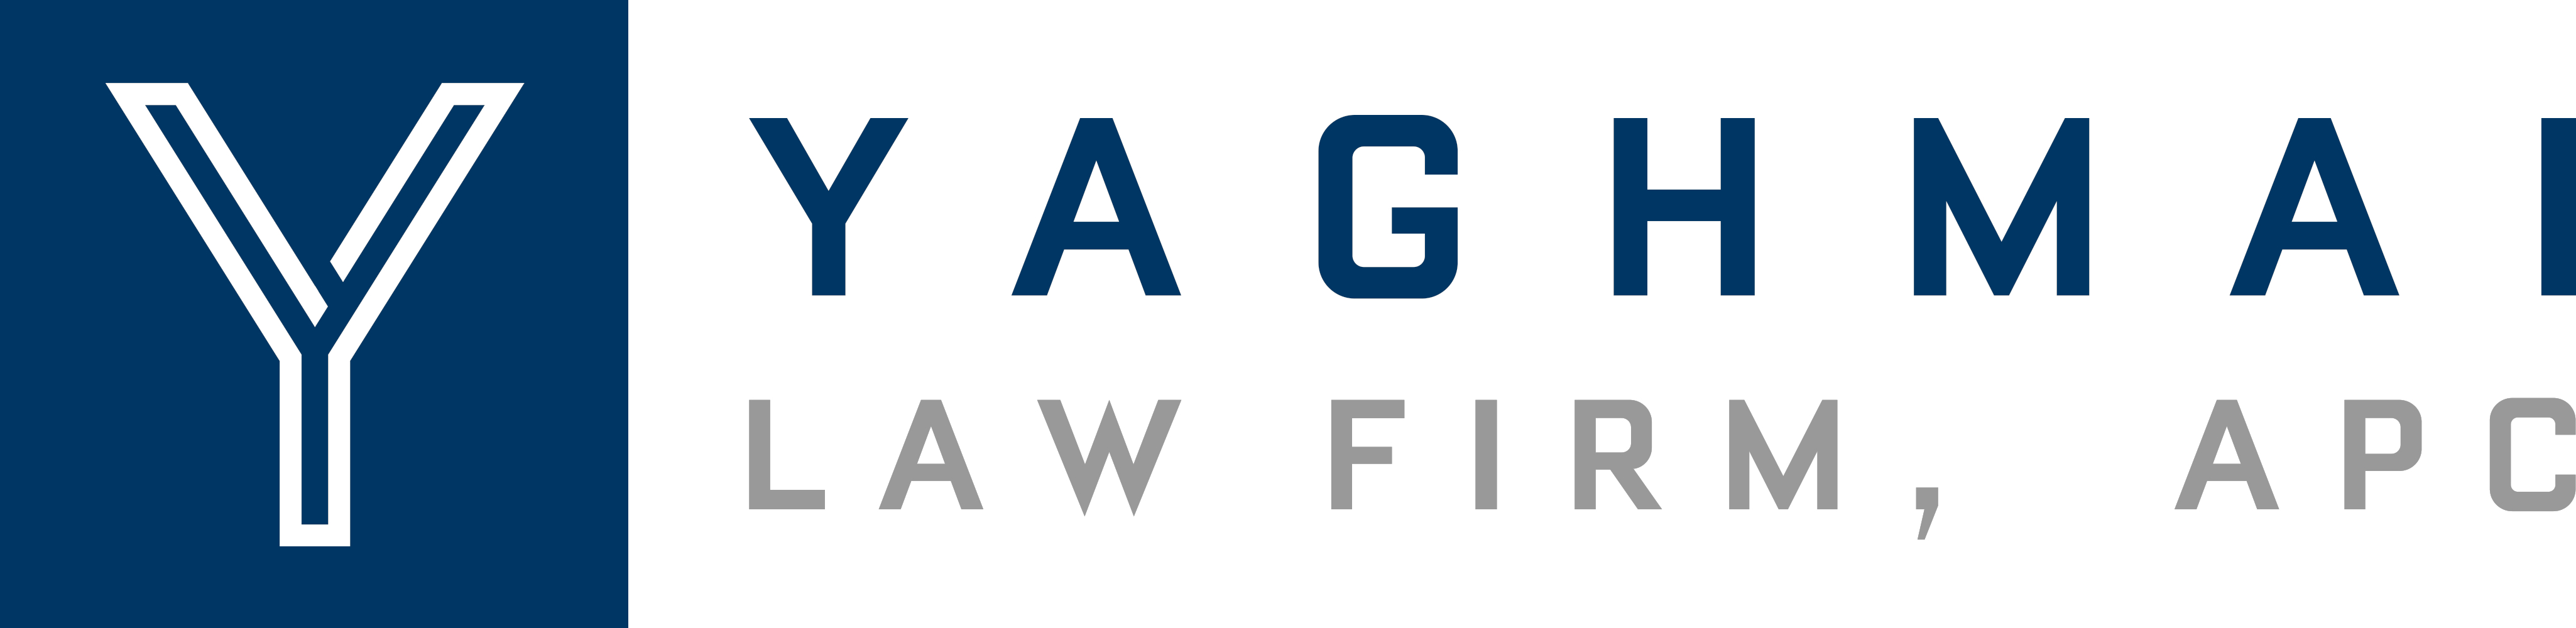 Best Law Firm For Extraordinary Ability Visa - Yaghmai Law